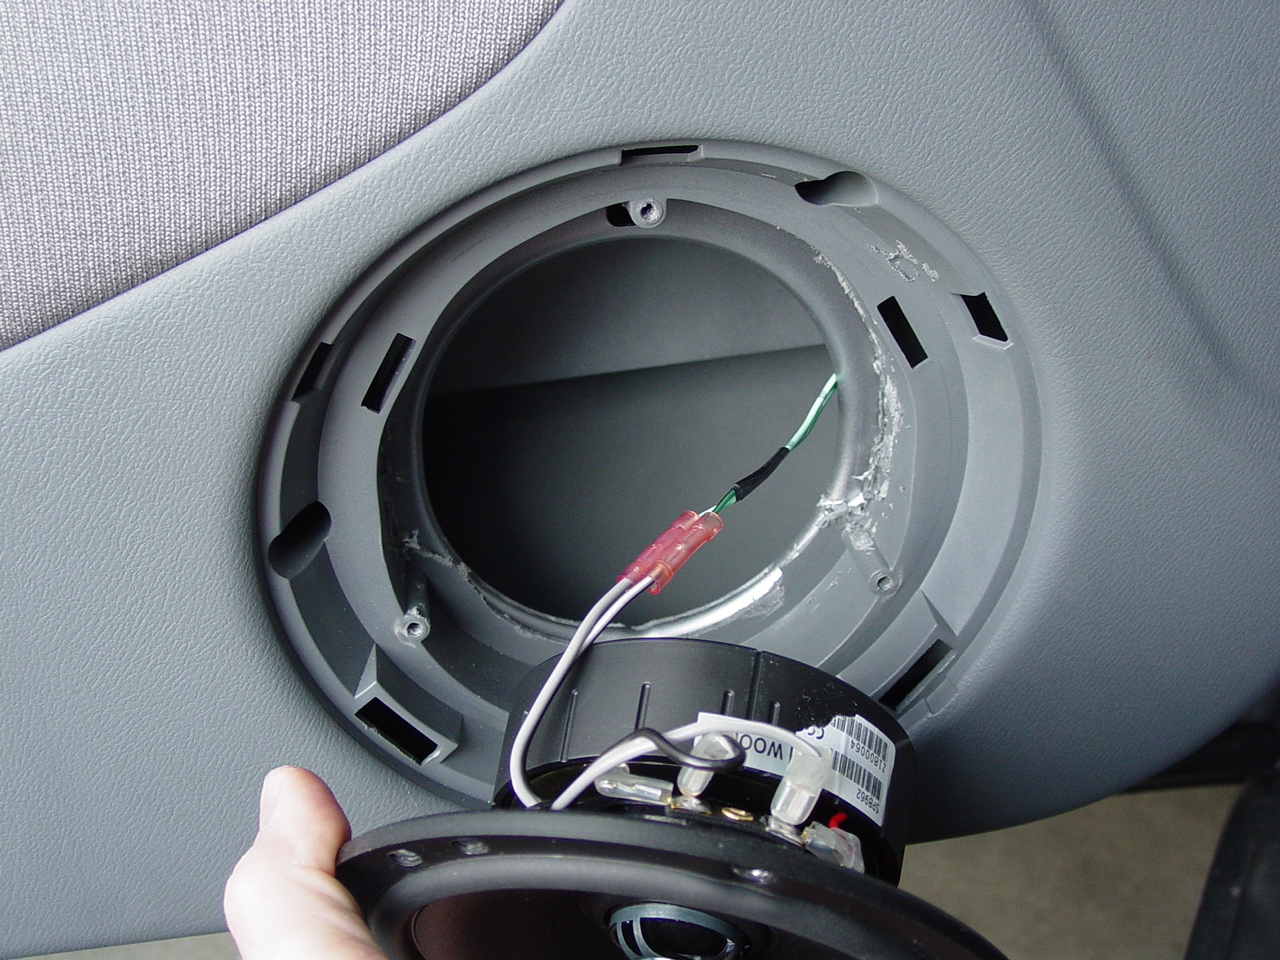 car%2Bspeaker%2Binstalled how to make car speakers sound more clearer how to install car